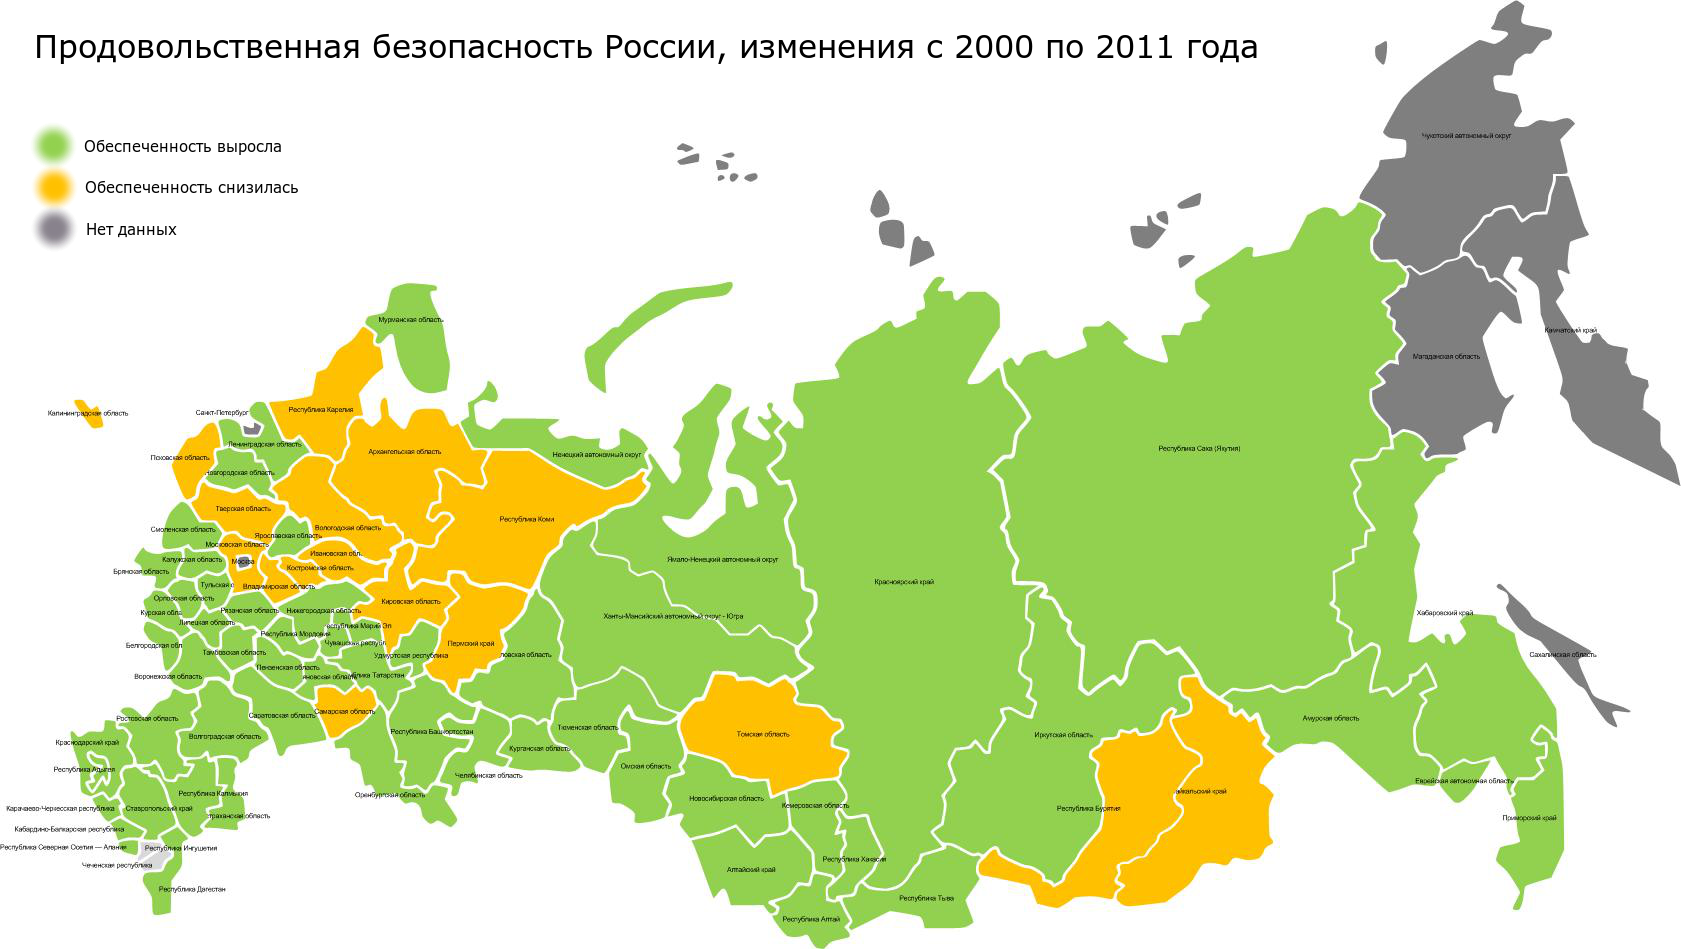 Food_safety_regions_of_Russia_2000-2011